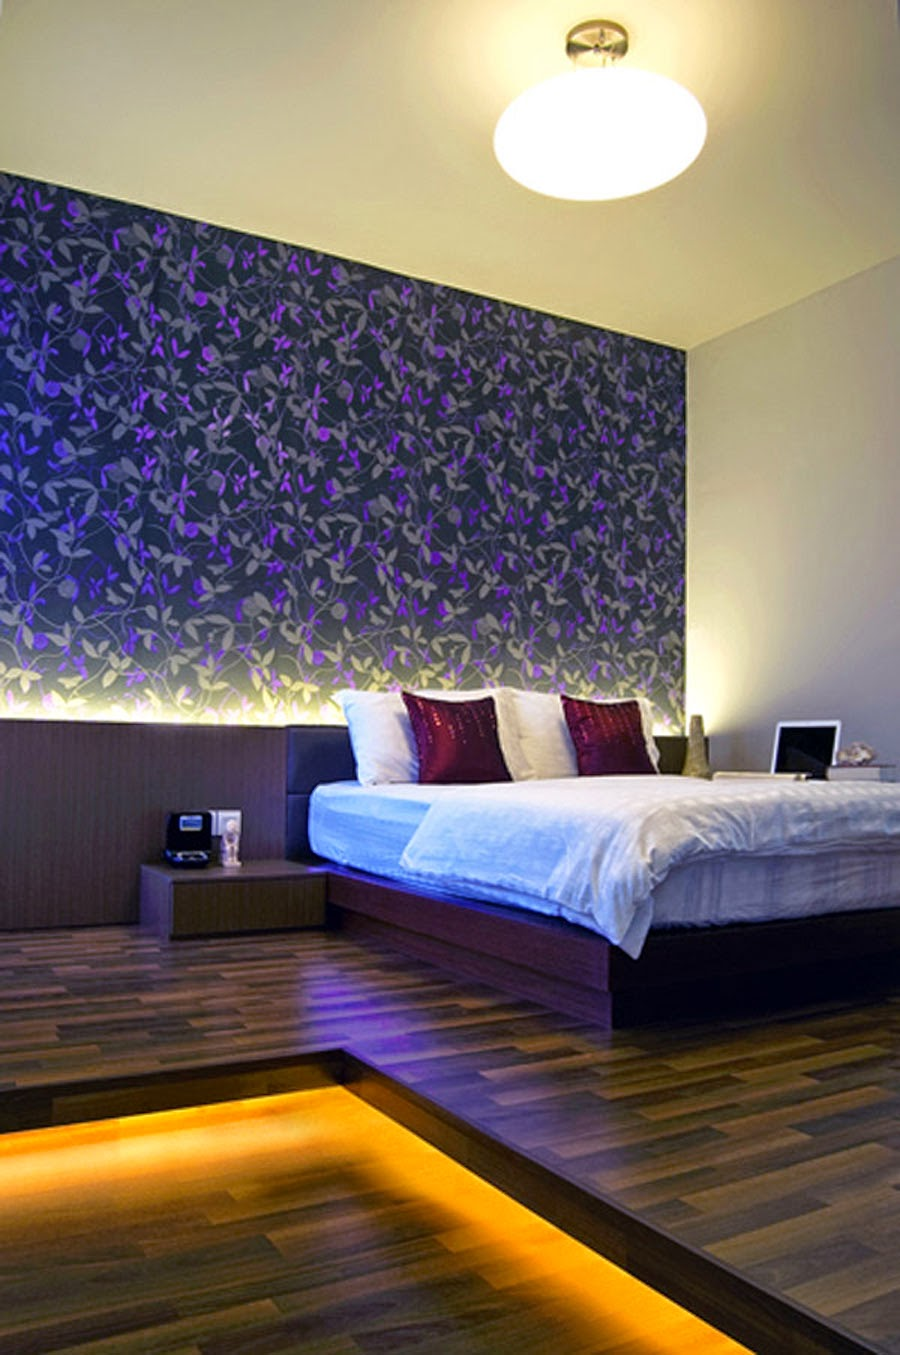 Design Wall Paint Room: Small Bedroom Lighting Ideas